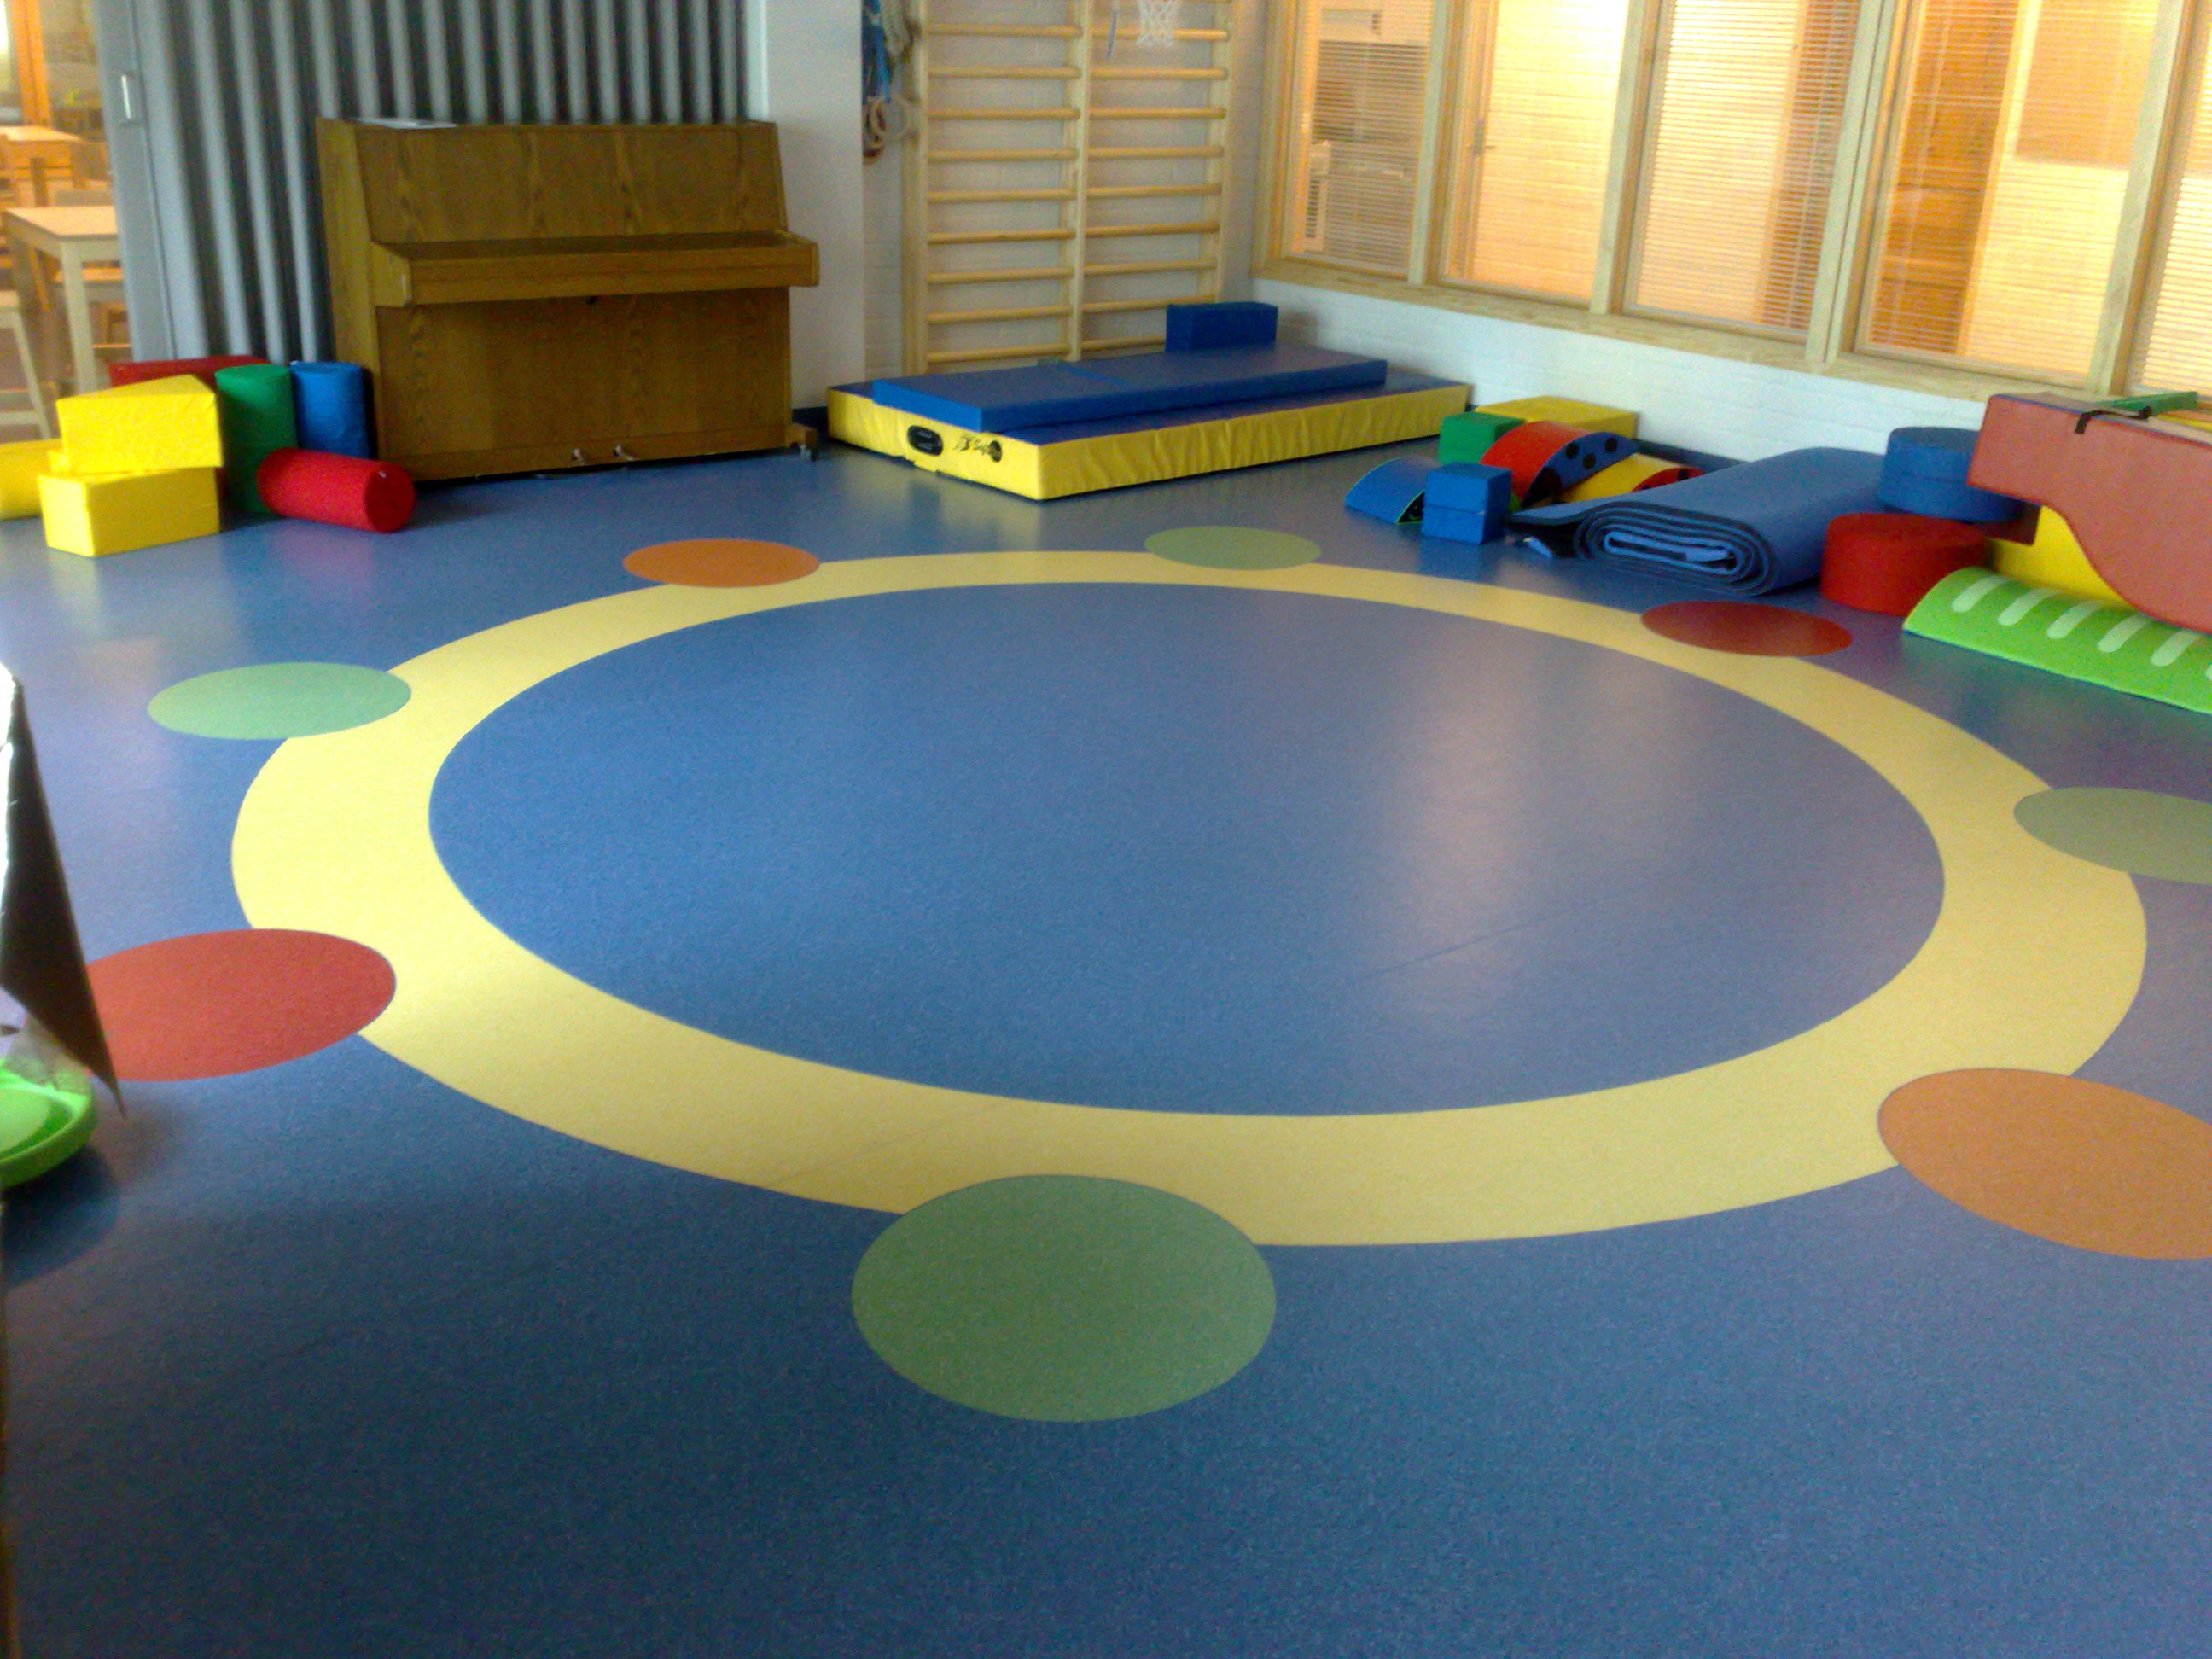 Commercial rubber floor tiles choice image tile flooring design rubber floor tiles kids images tile flooring design ideas commercial rubber flooring tiles gallery tile flooring doublecrazyfo Images